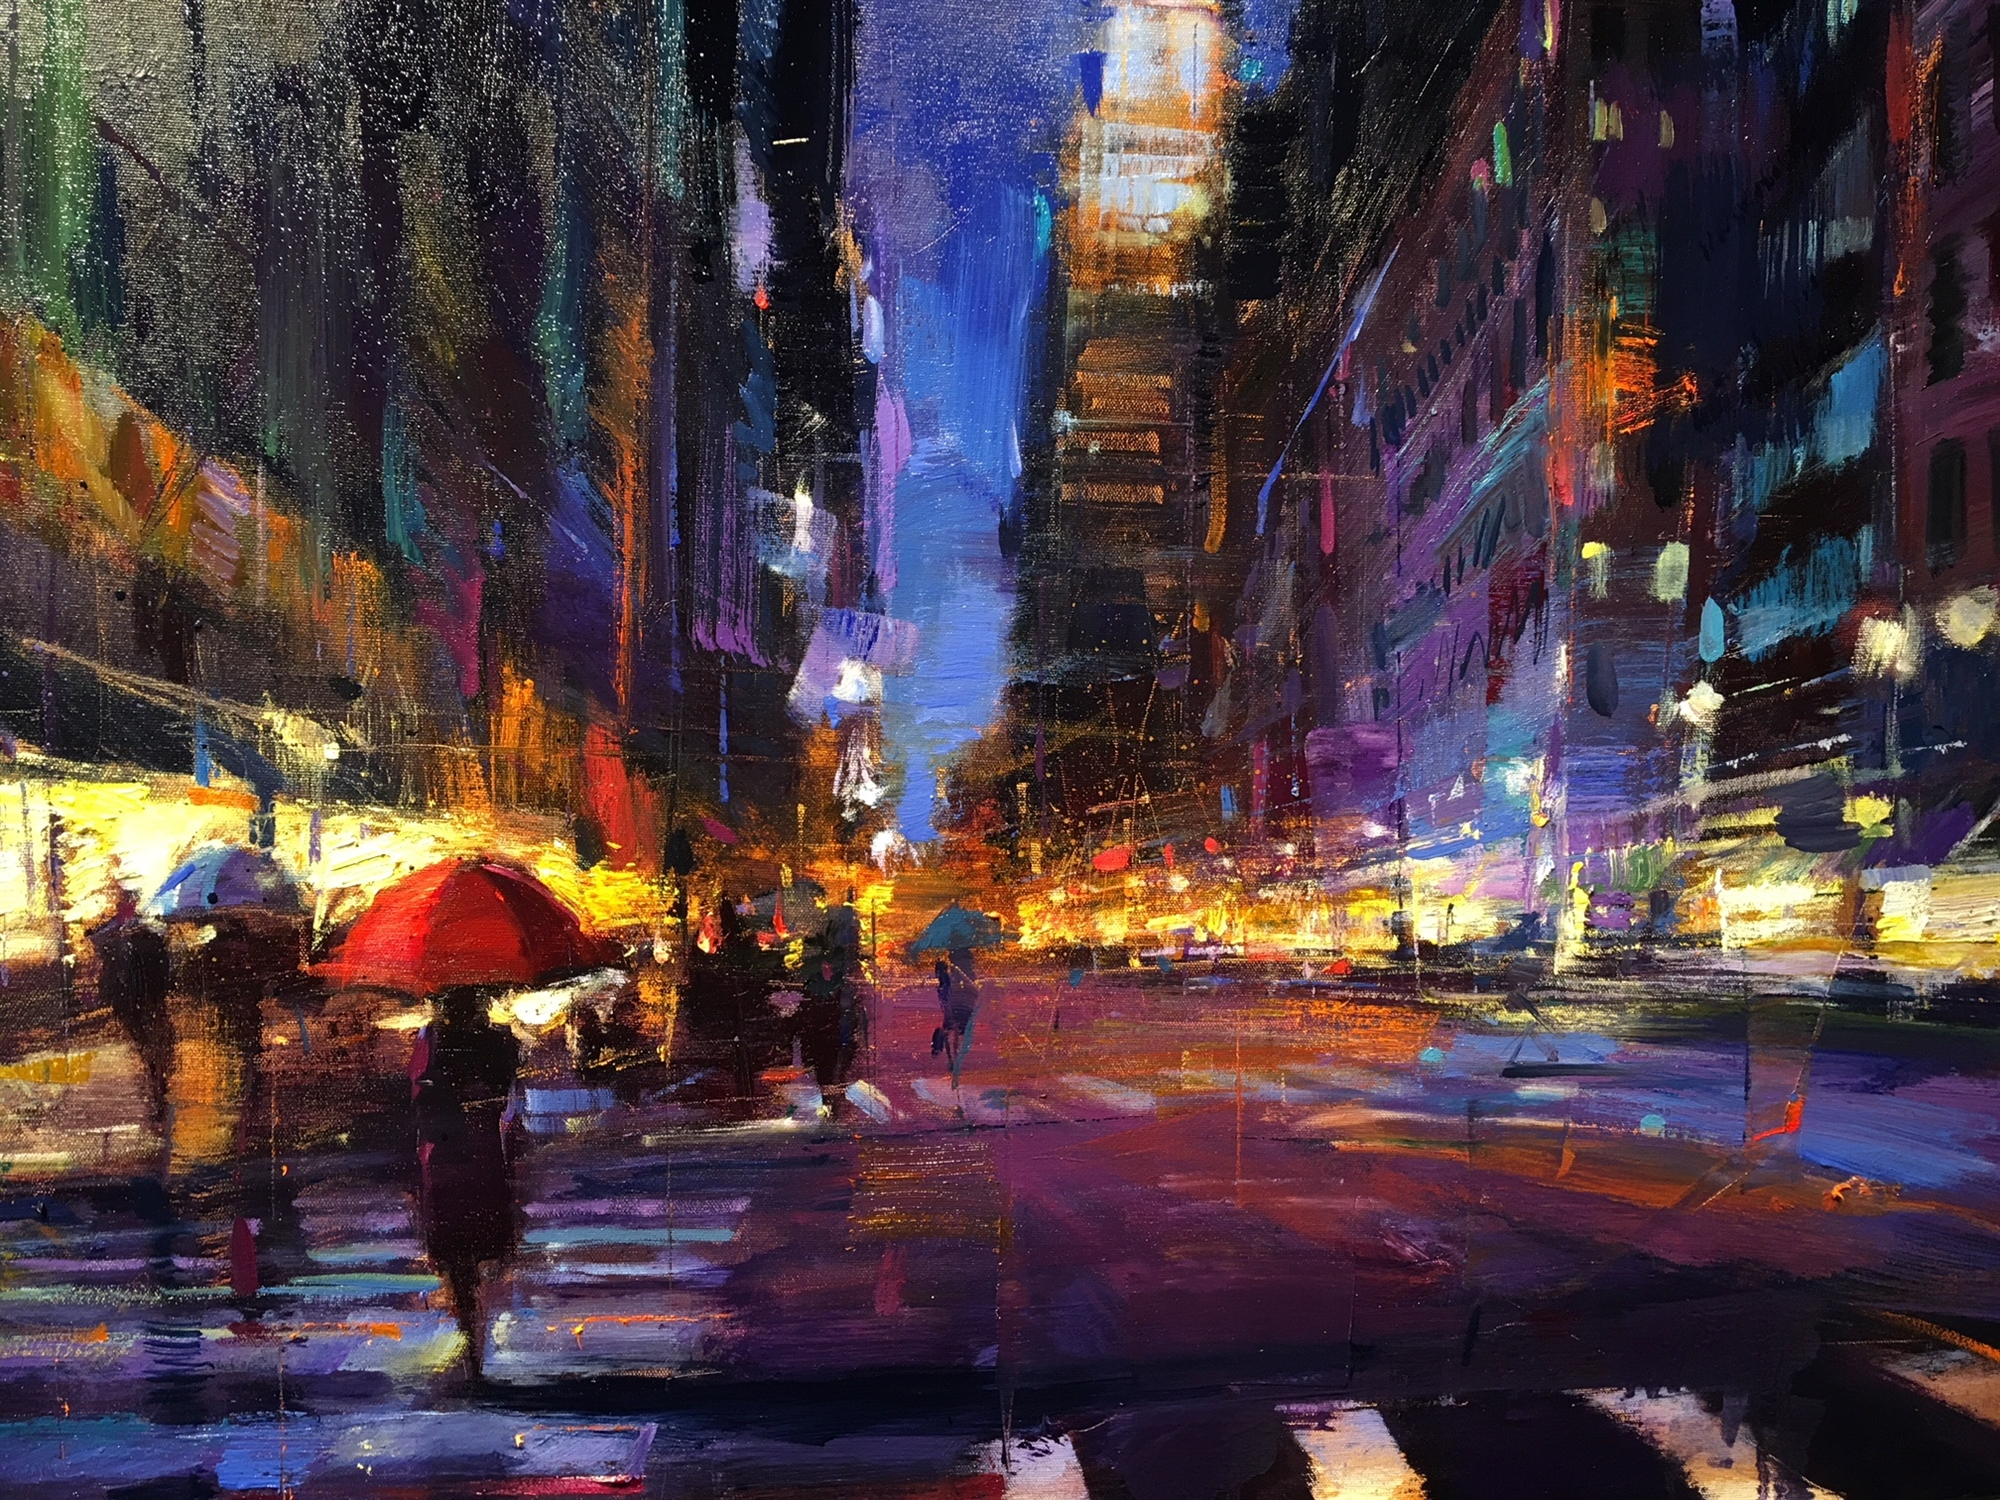 New York City Rain by Michael Flohr